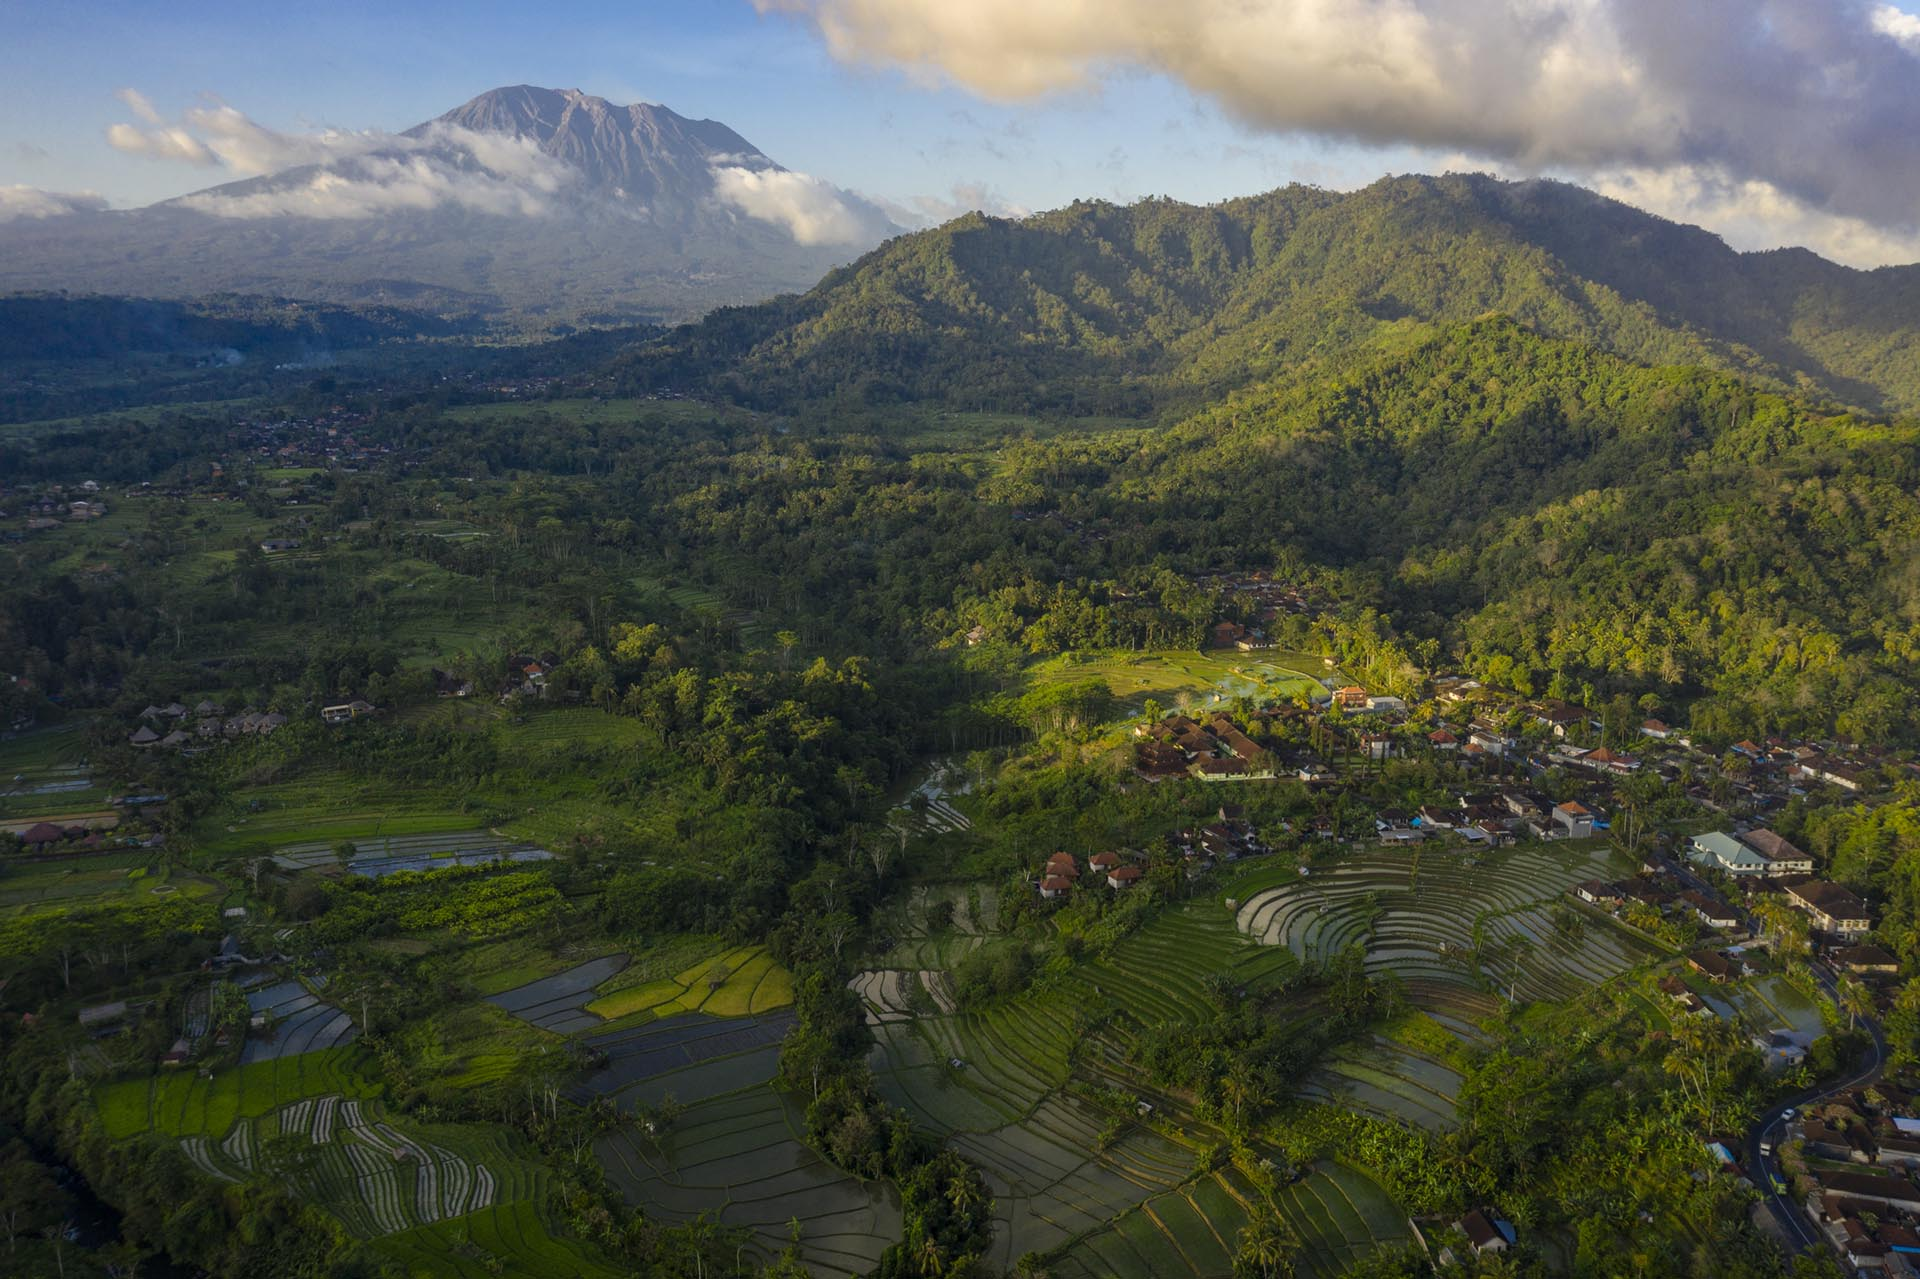 bali rice fields and volcano